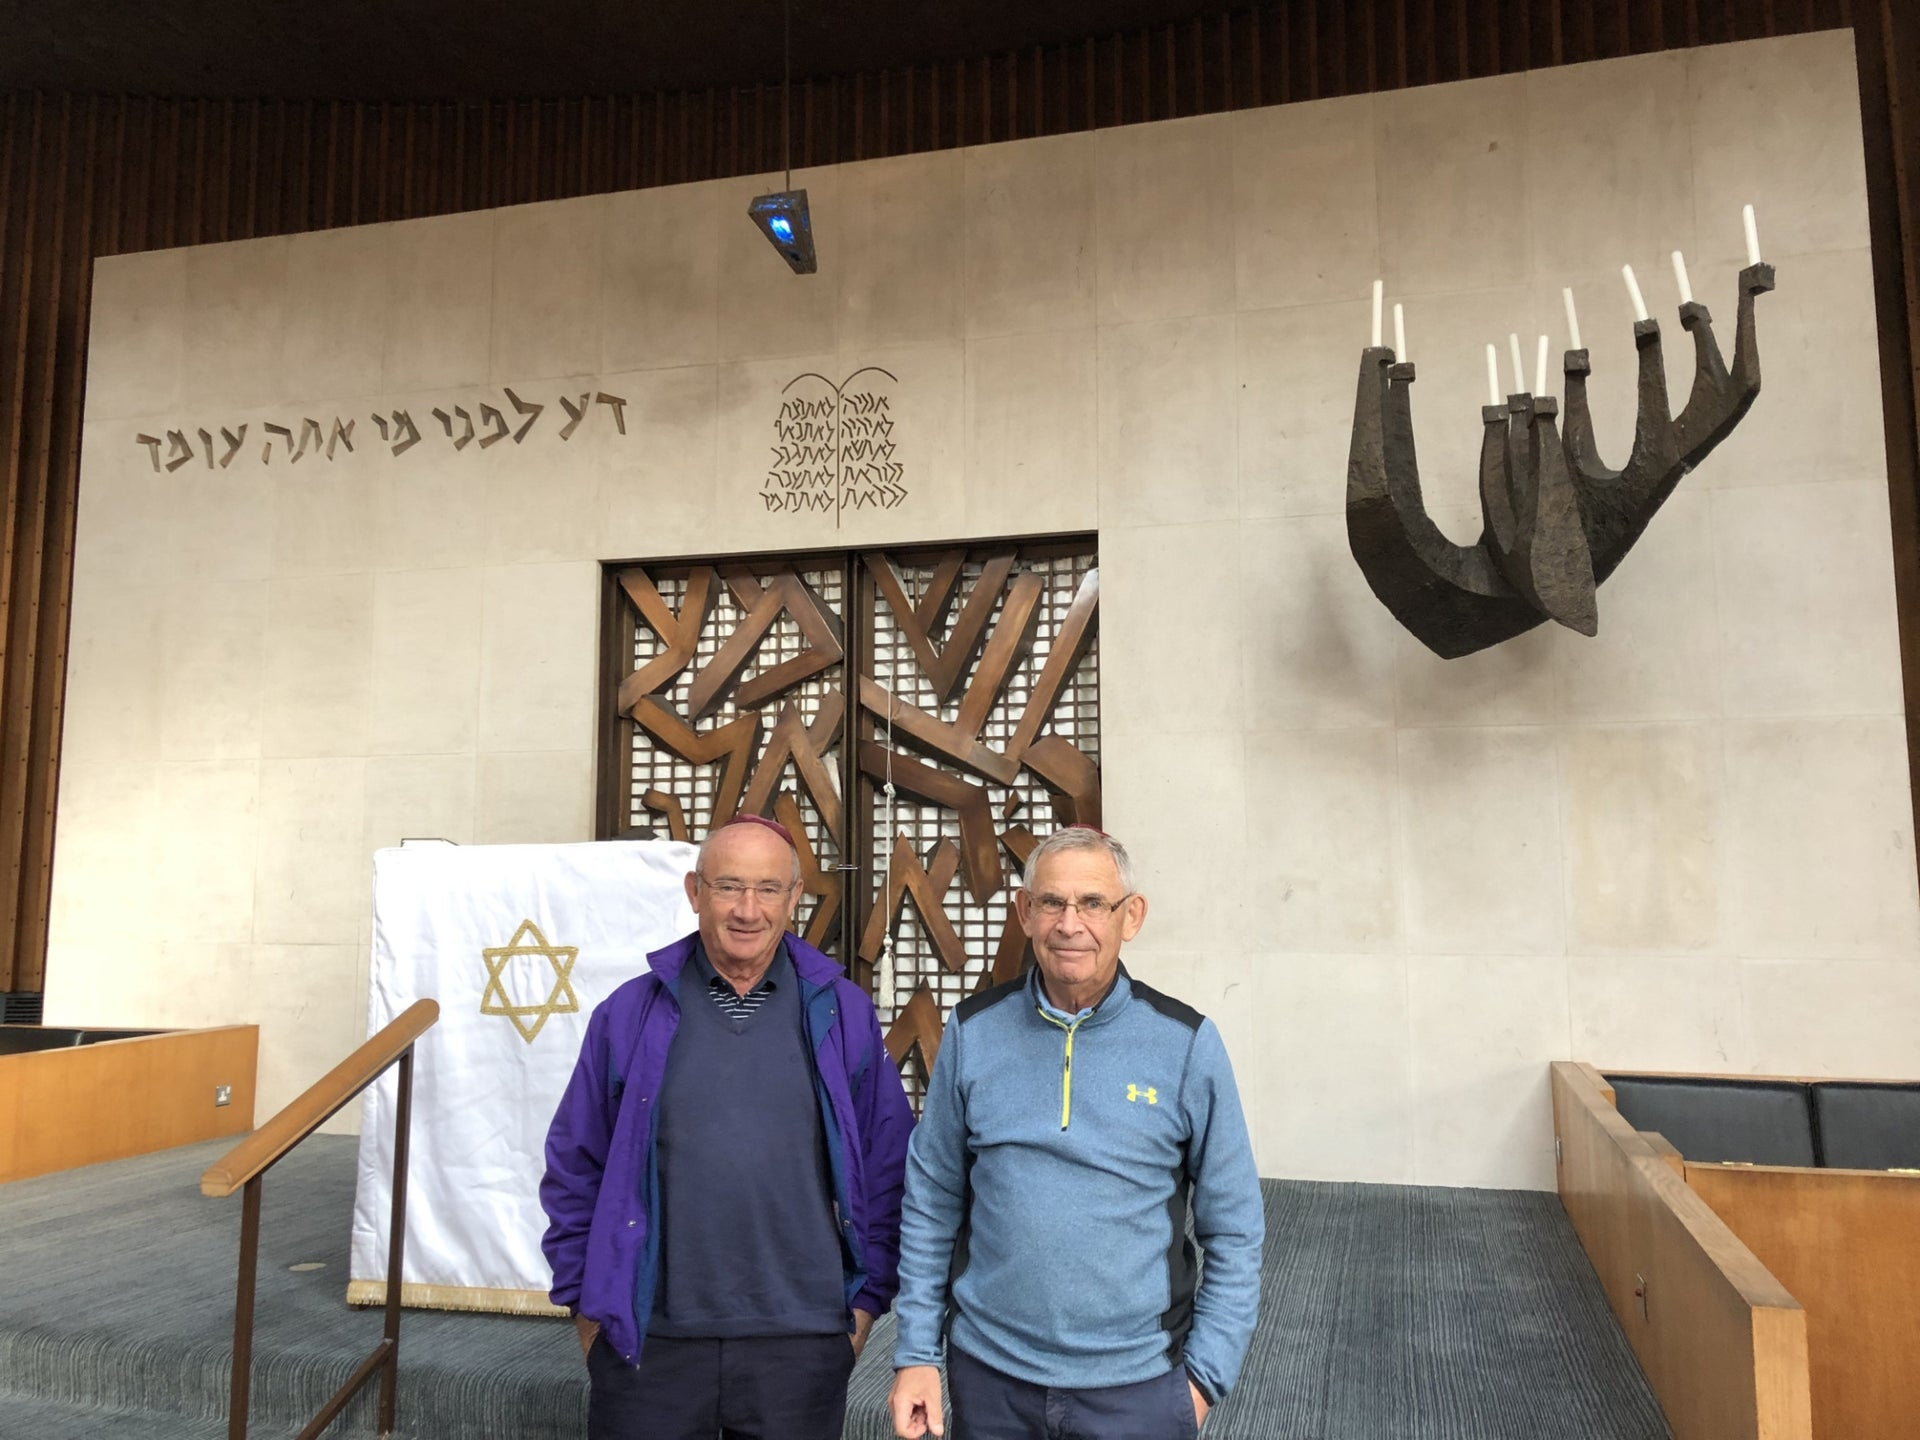 Michael Black, left, and Tony Black in Belfast Synagogue, October 8, 2019.